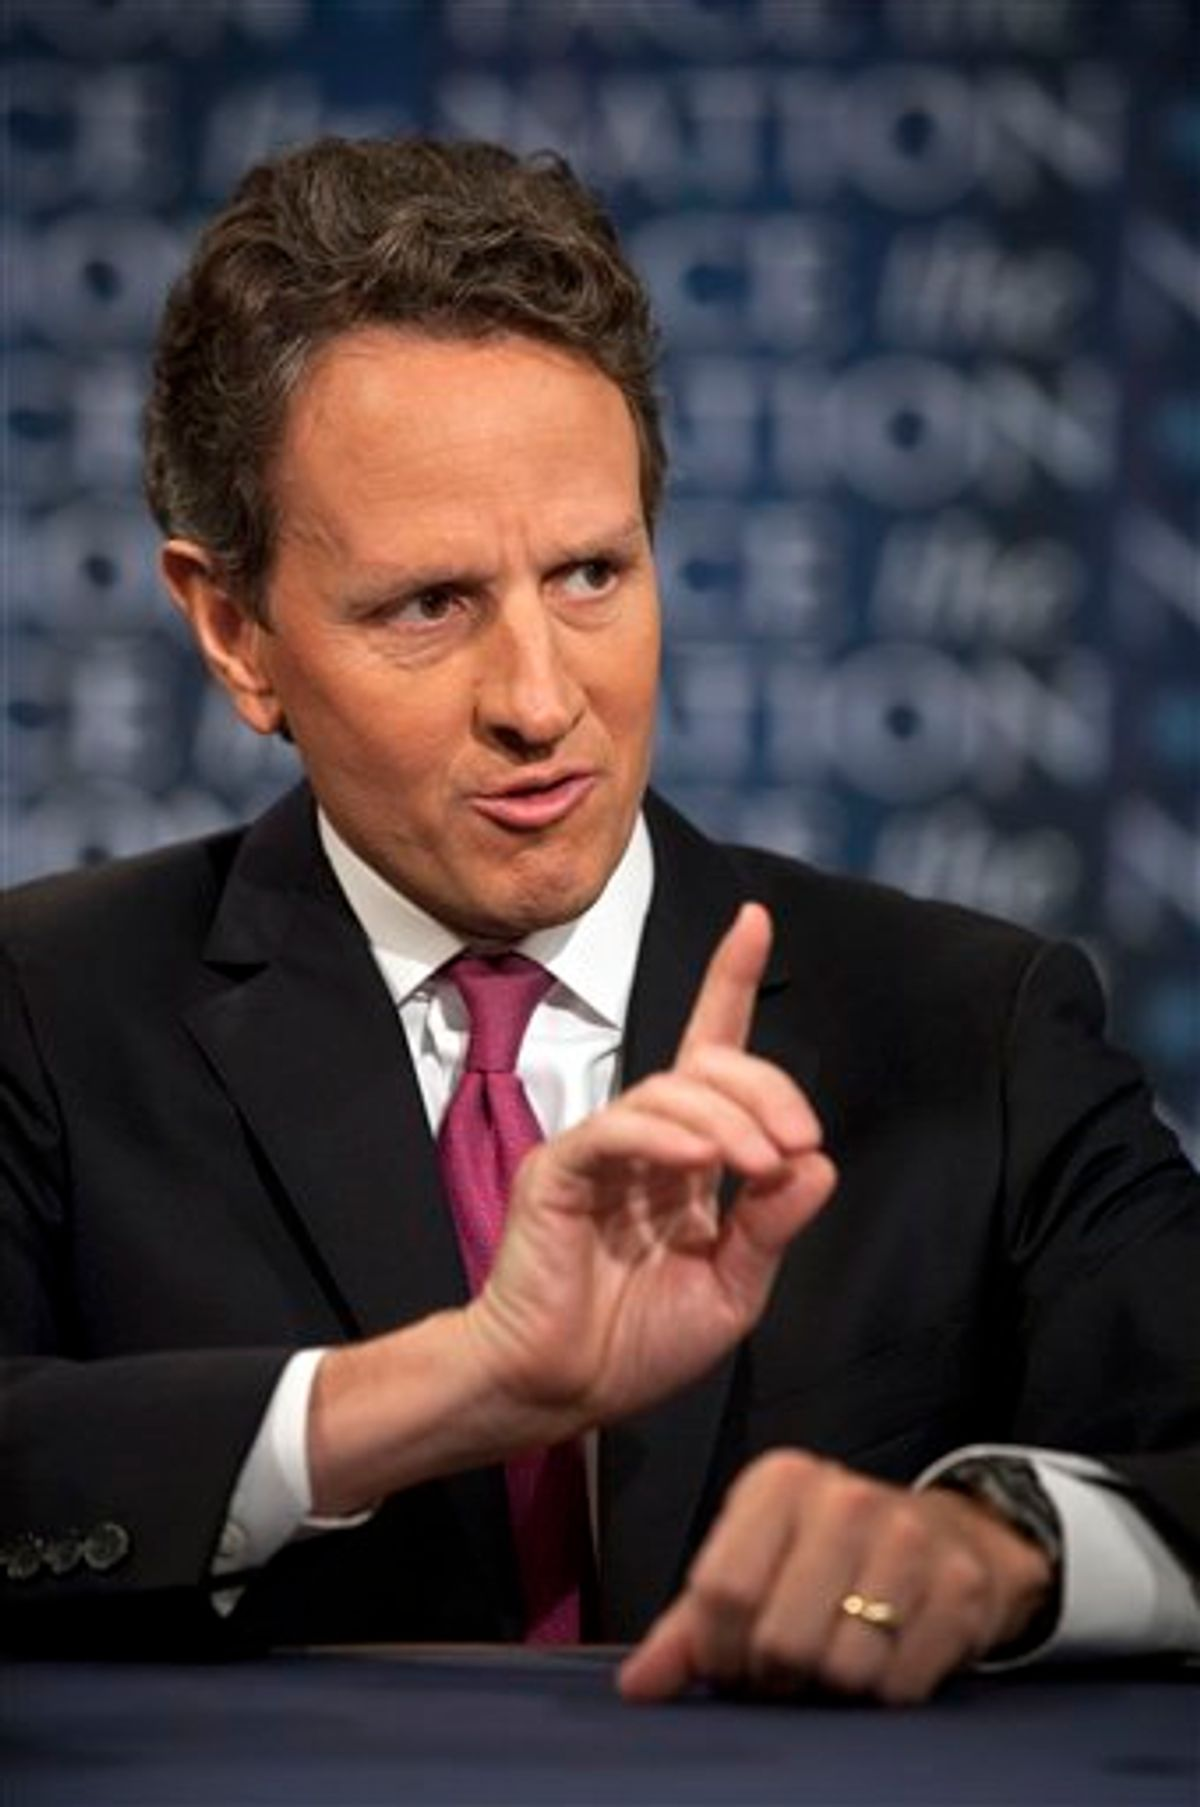 """In this photo provided by CBS News, U.S. Treasury Secretary Timothy Geithner talks about the debt crisis on CBS's """"Face the Nation"""" in Washington Sunday, July 10, 2011. Geithner said Sunday that the Obama administration wants to seek """"the biggest deal possible"""" on debt reduction. His comments followed word from GOP congressional leaders Sunday that the White House's $4 trillion package was off the table. (AP Photo/CBS News, Chris Usher) (AP)"""